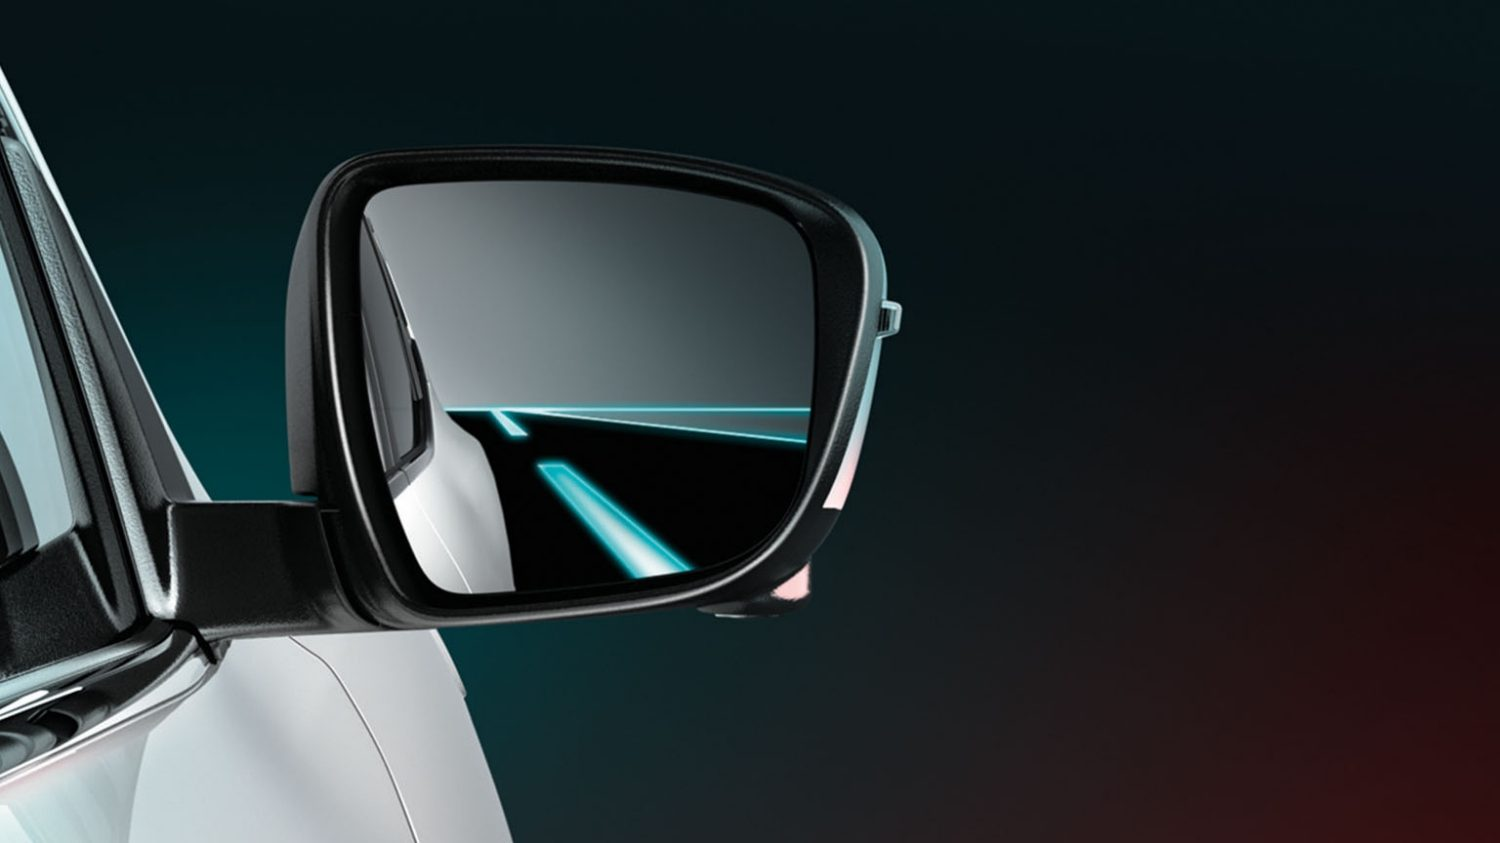 Nissan Pulsar – Hatchback | Side view mirror blind spot warning